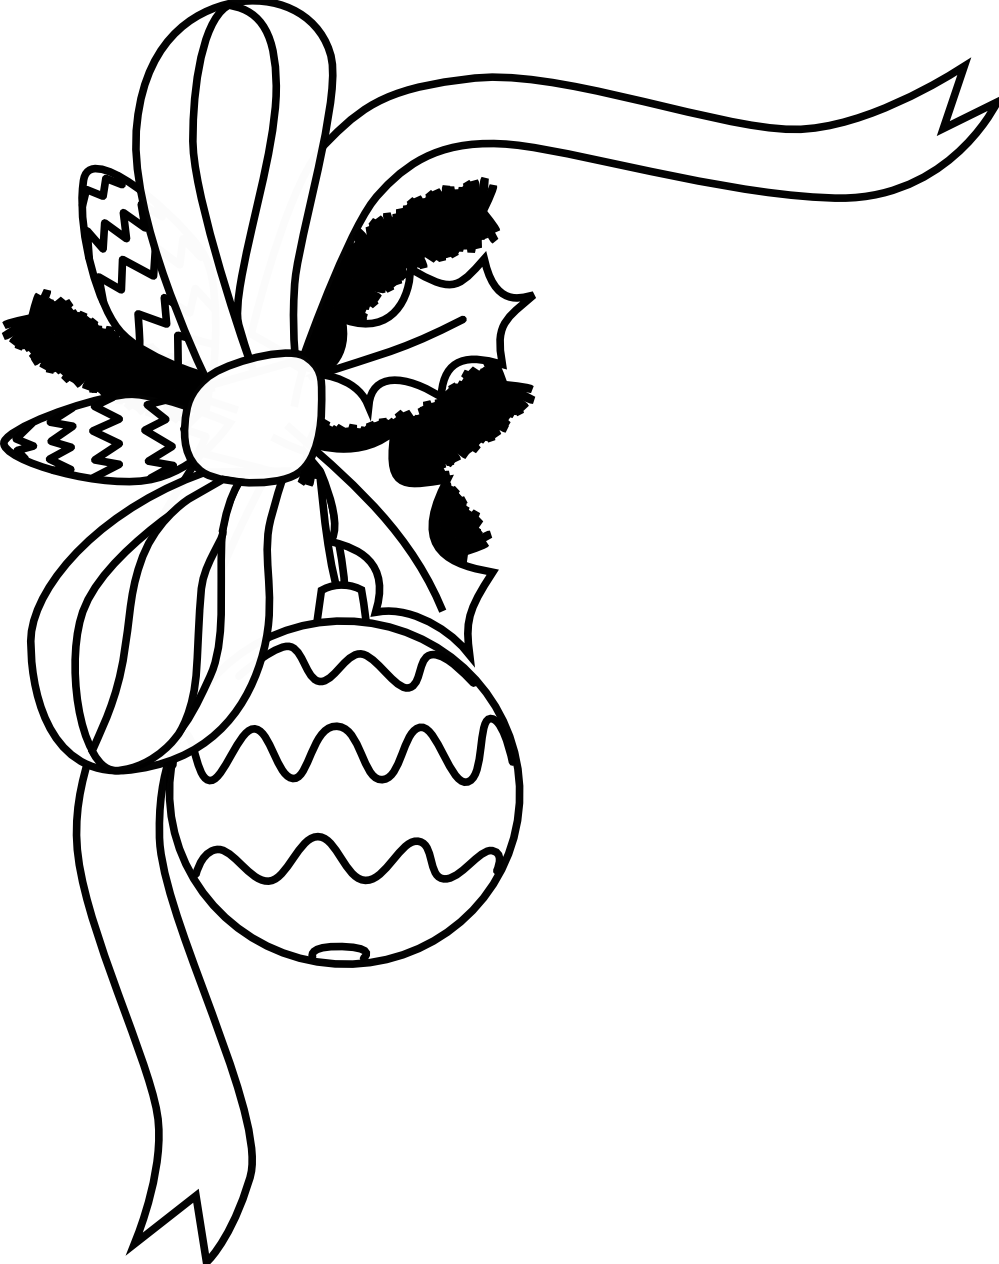 999x1264 Religious Christmas Clipart Black And White 101 Clip Art